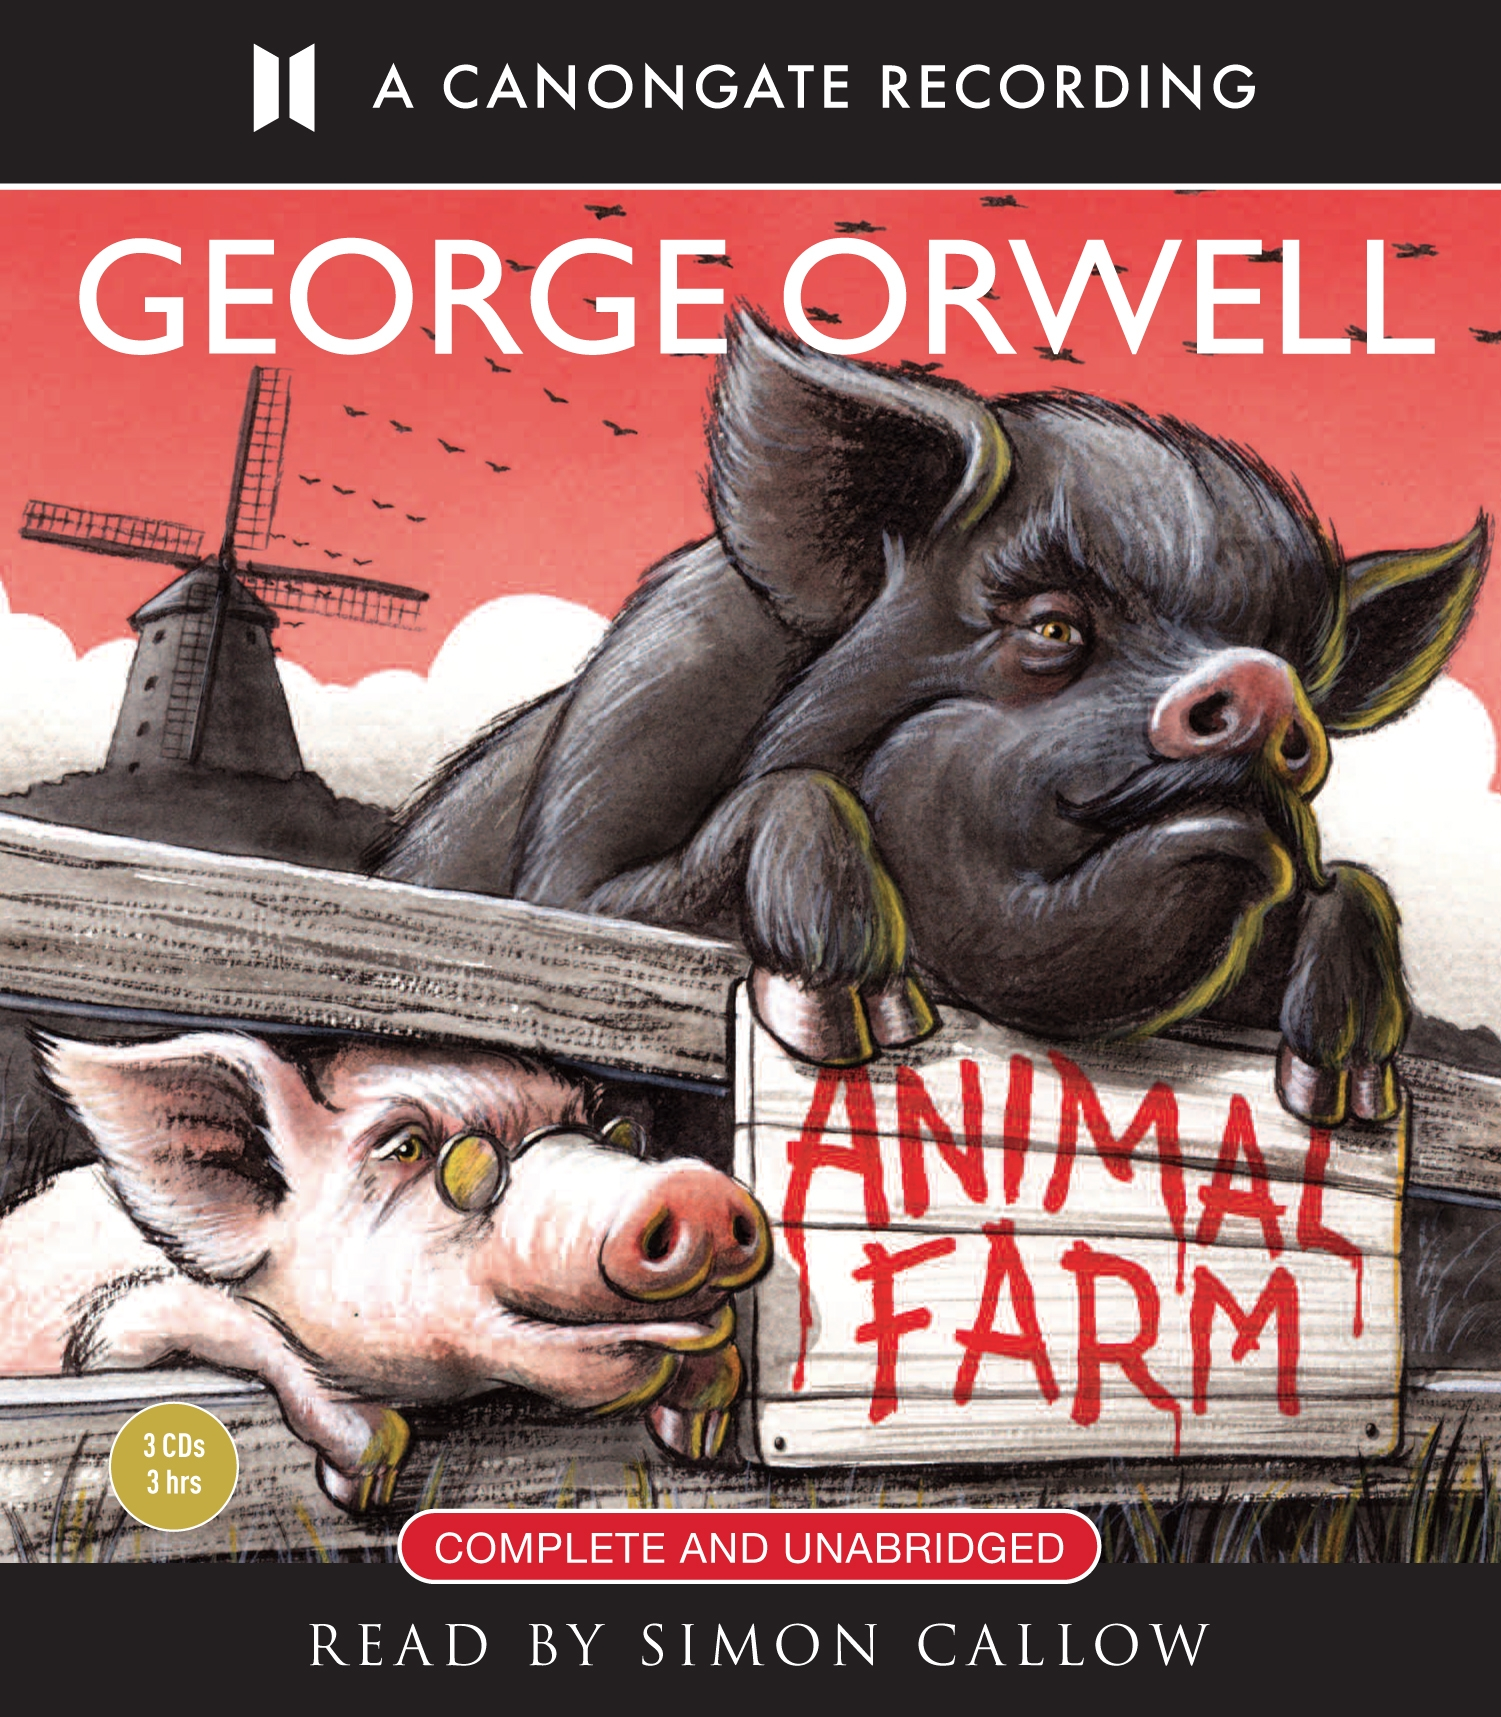 Animal Farm By George Orwell Canongate Books